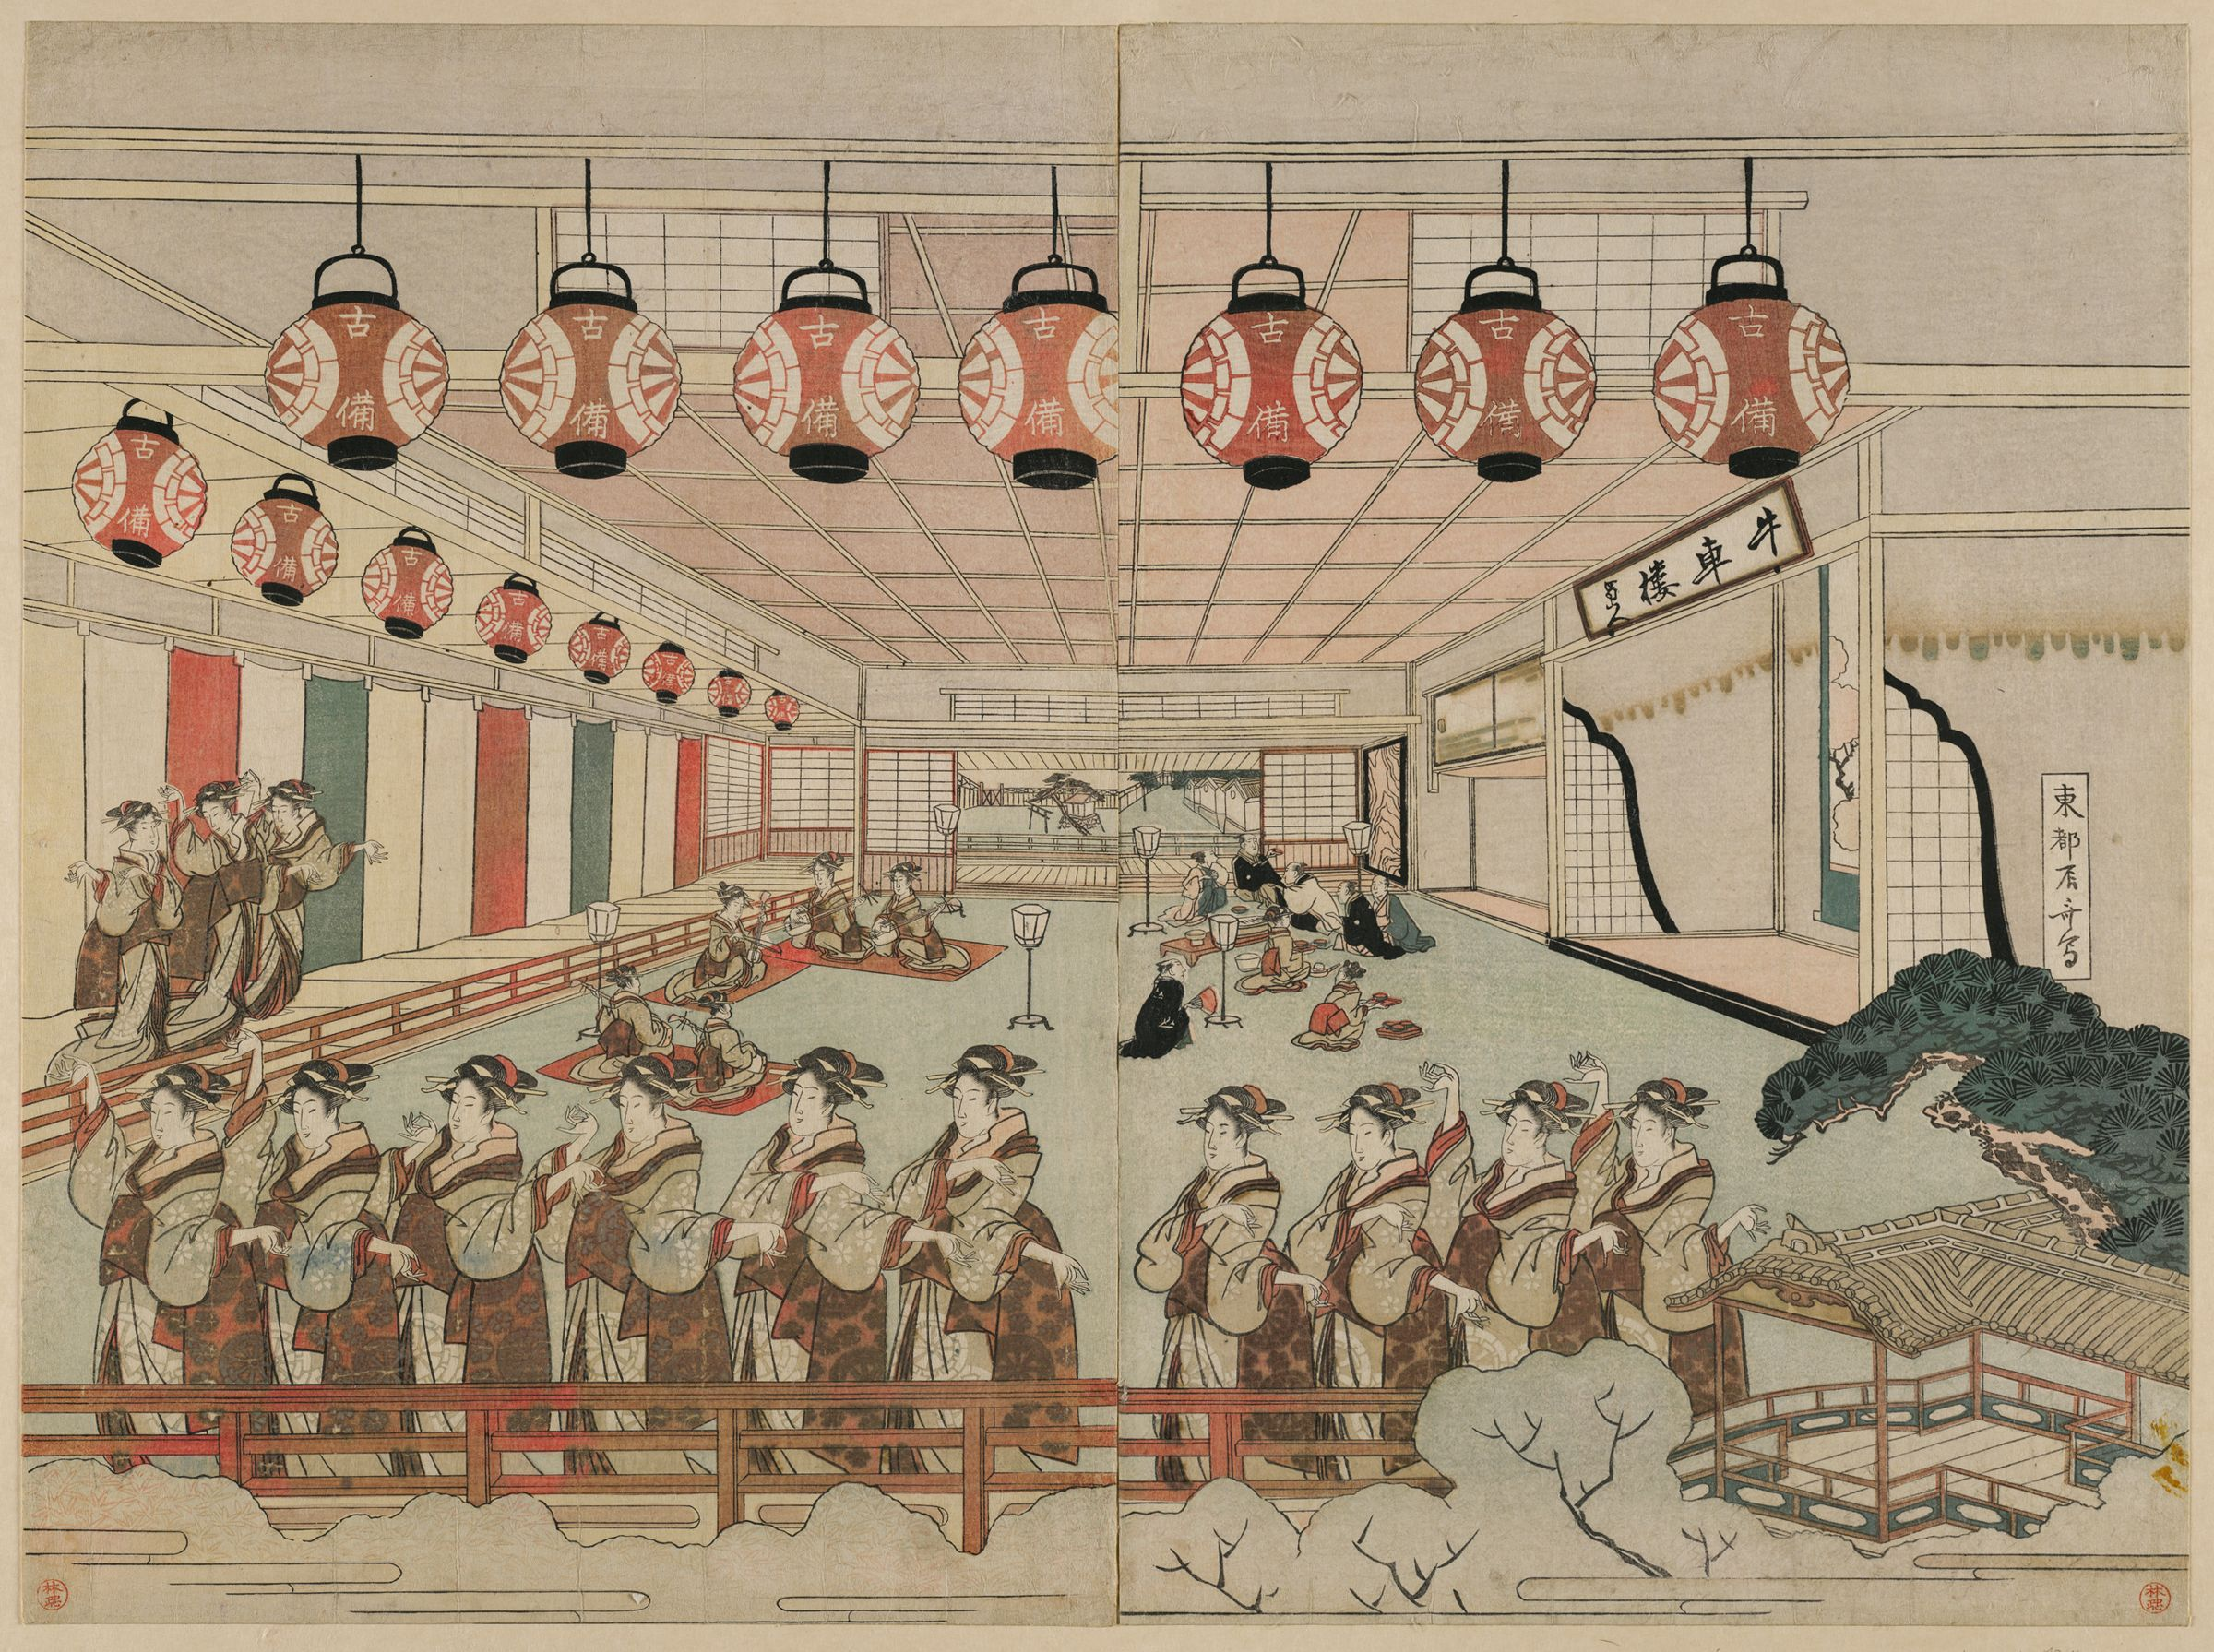 Diptych: Perspective View Of Dancers In An Interior